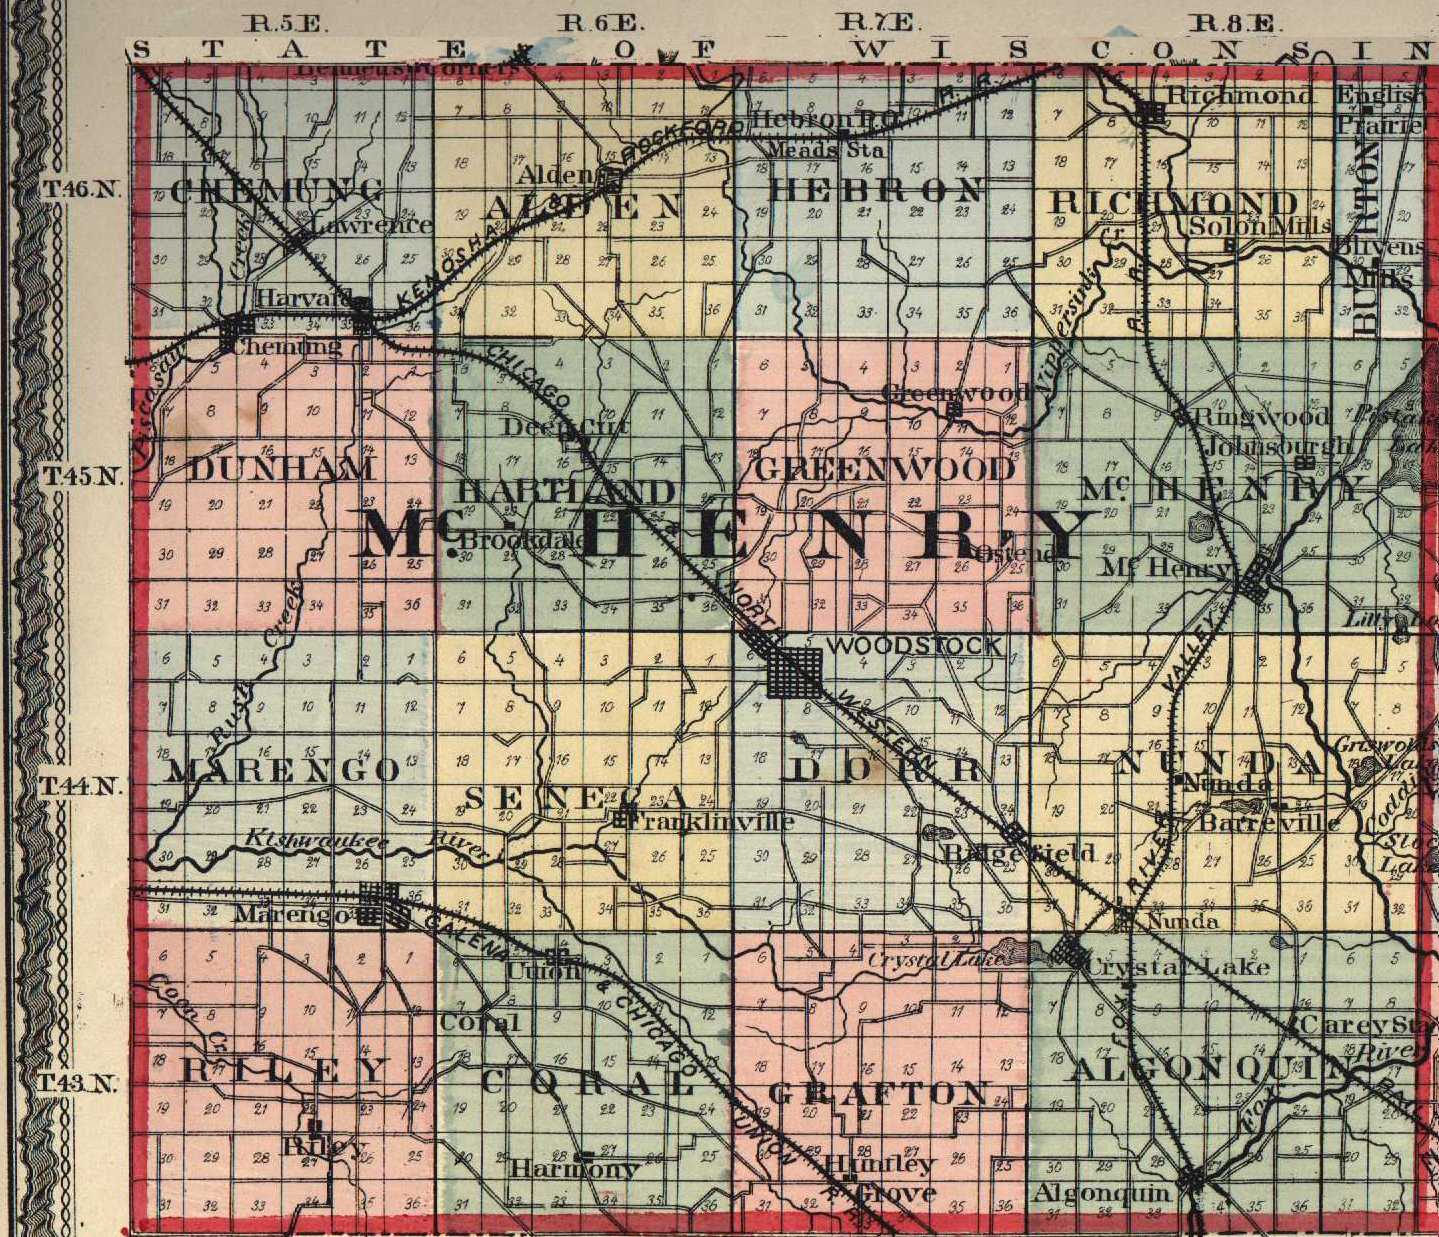 Mchenry County Illinois Maps And Gazetteers